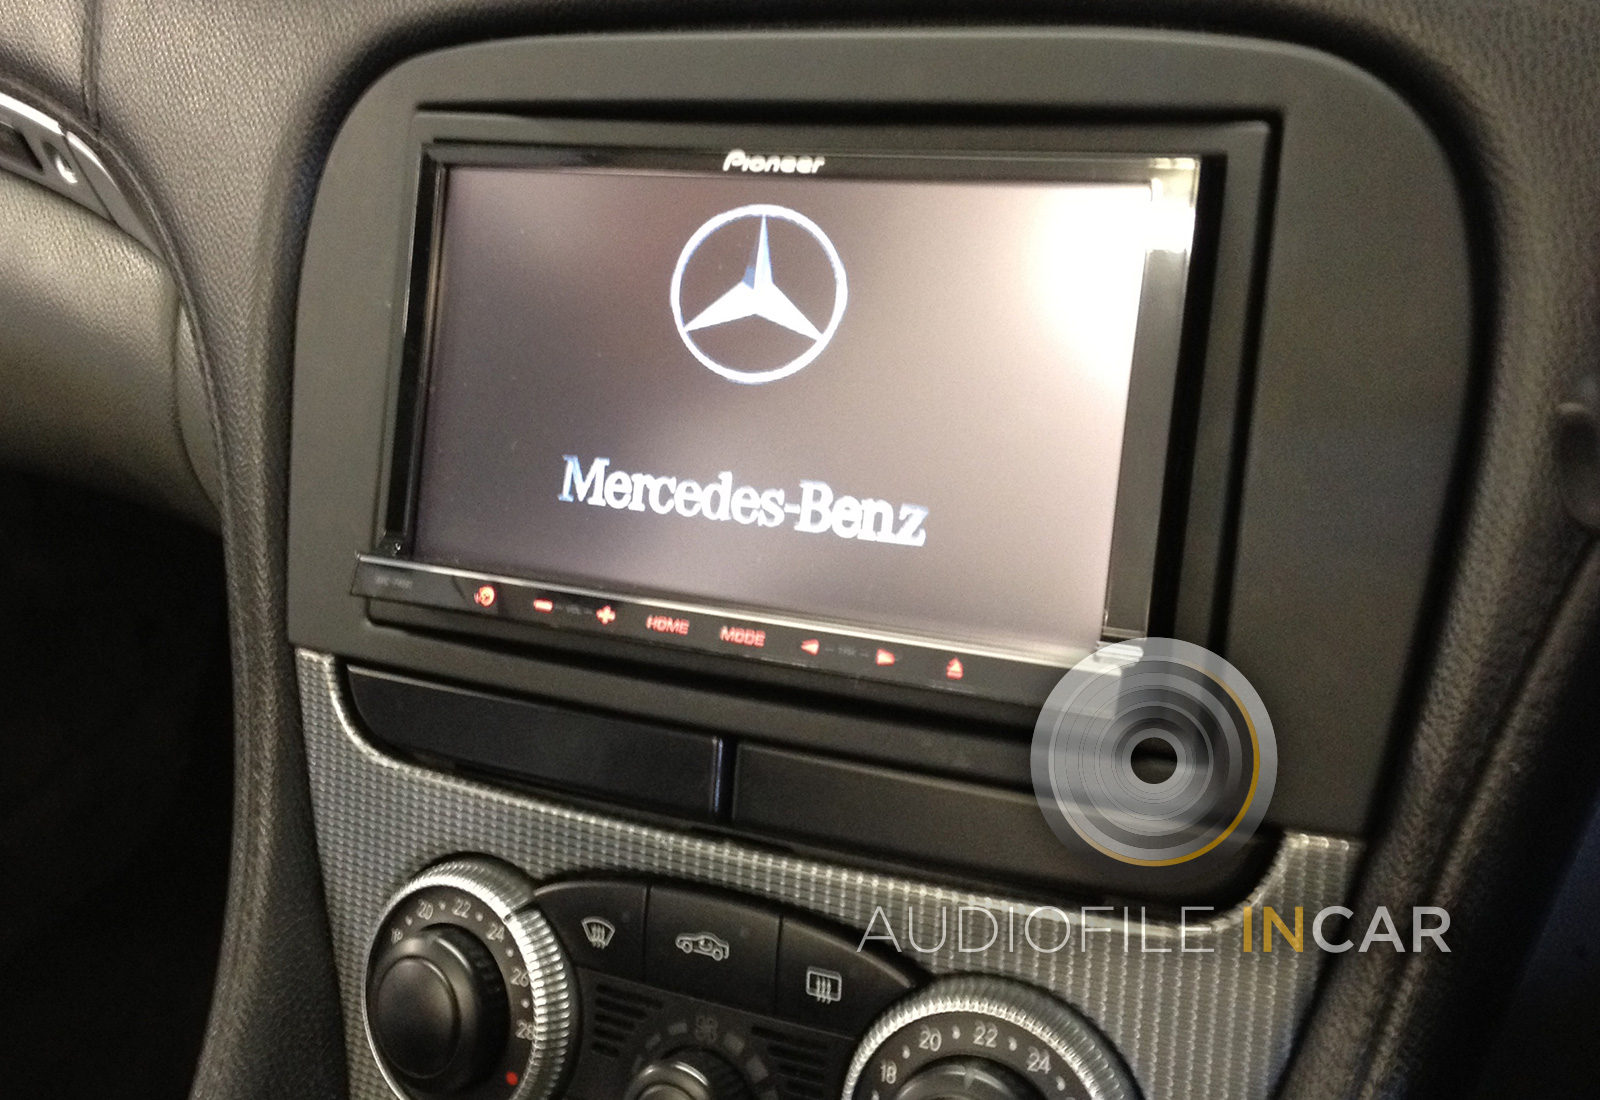 The Pioneer Avic-F40 fitted to Mercedes SL, fully fitted with steering control compatibility from £1499 inc VAT.